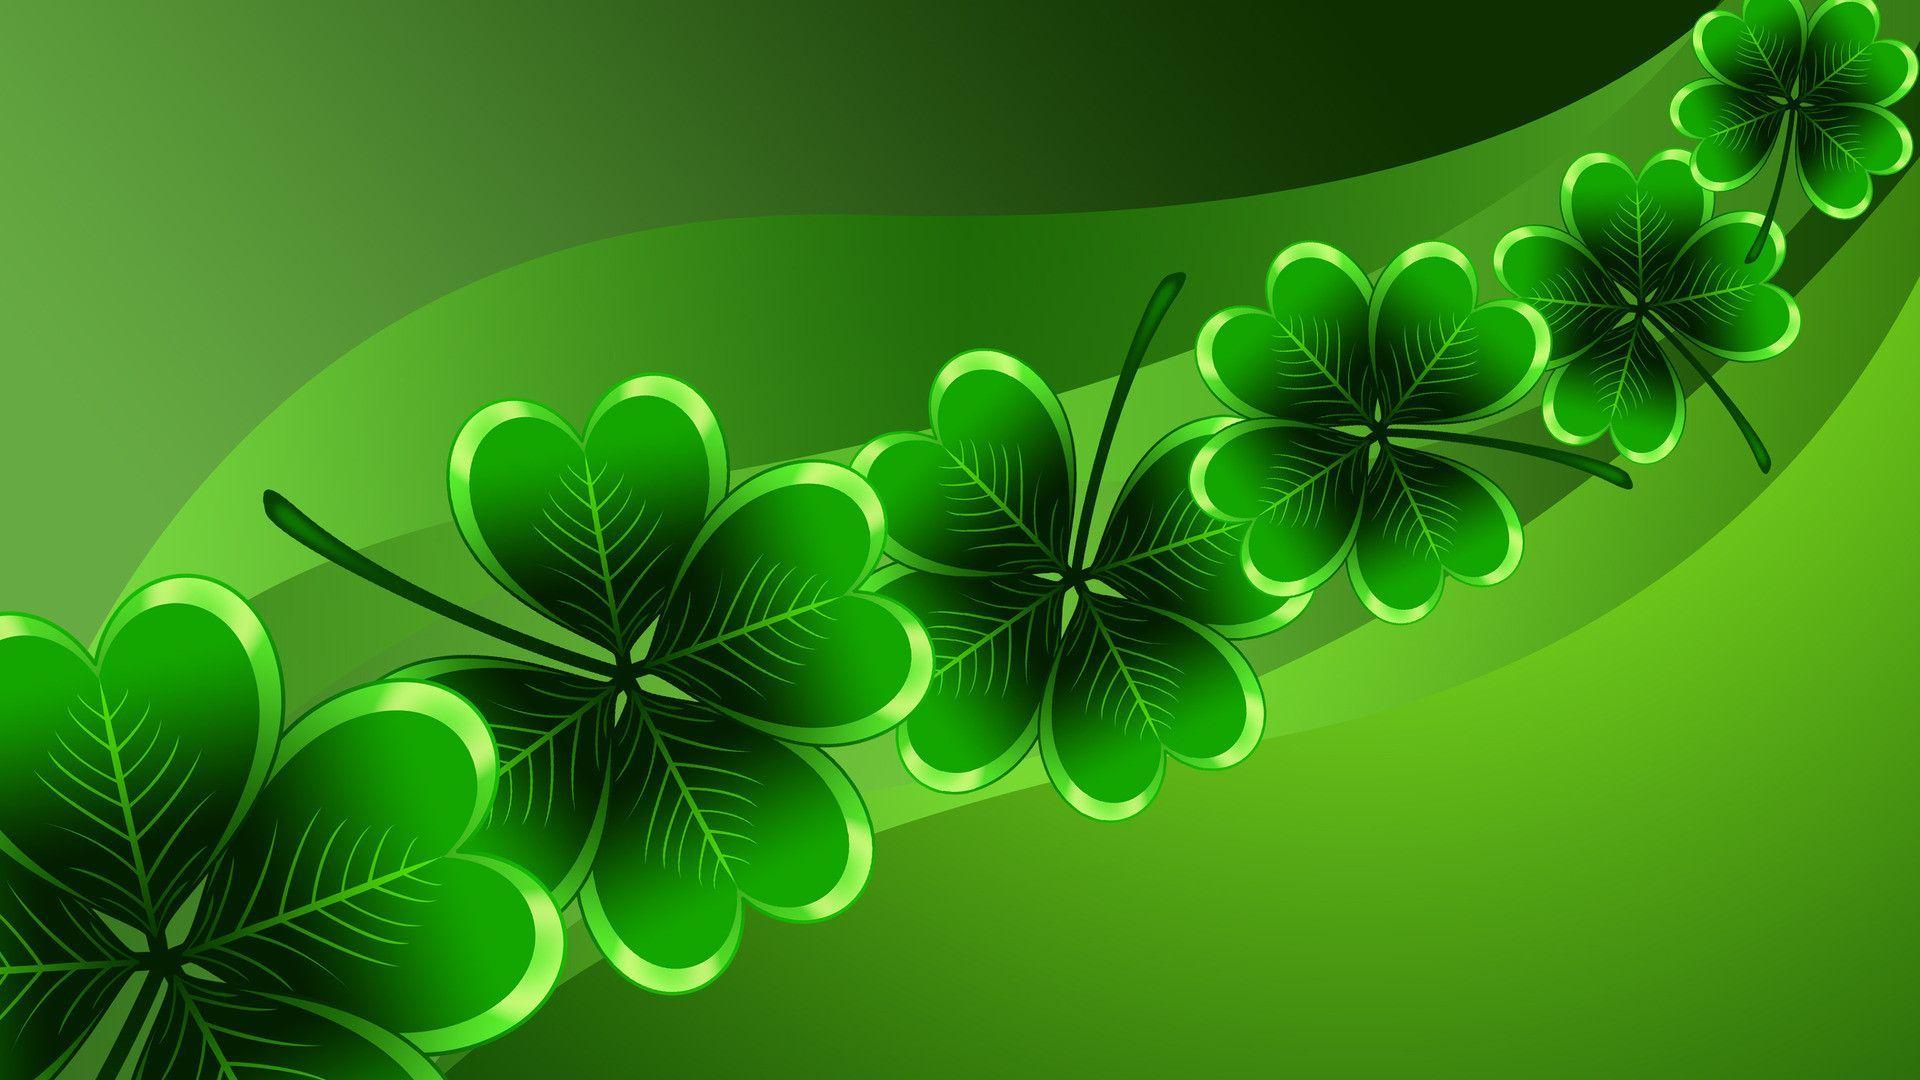 simple st patrick wallpaper - photo #9